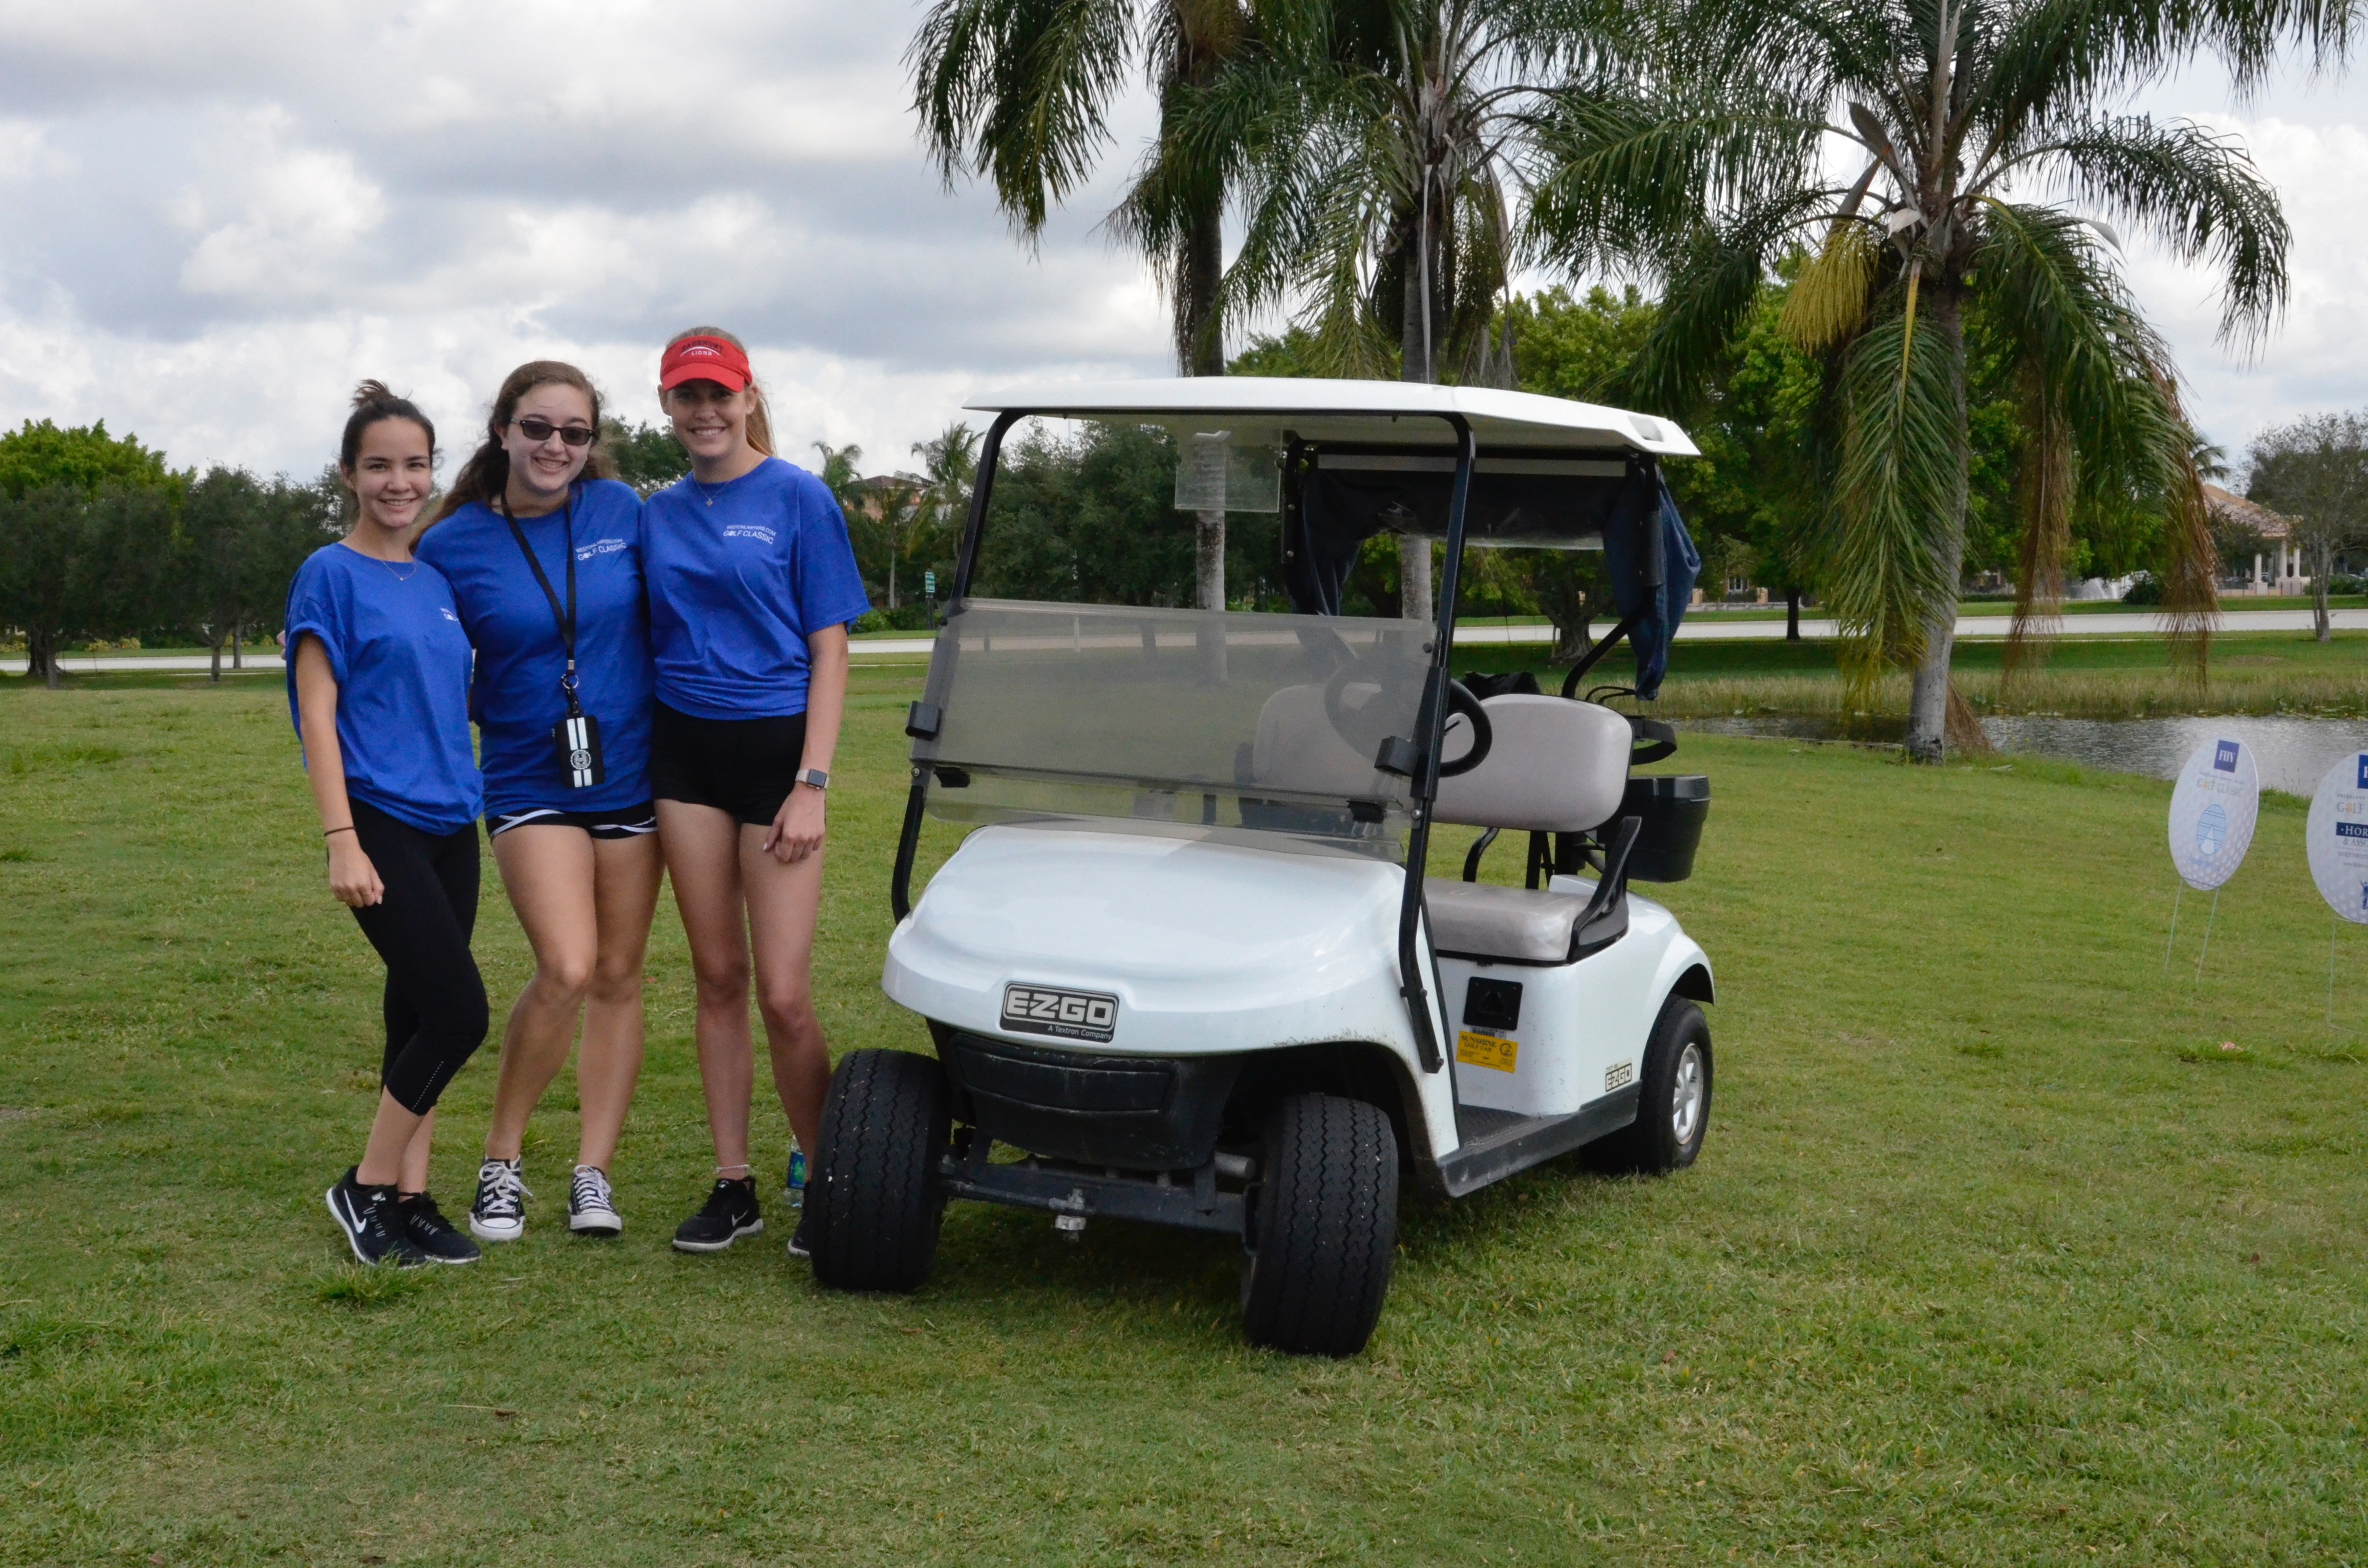 33rd Annual Rotary Golf Classic Sponsored by FHVLEGAL.COM gallery image #16